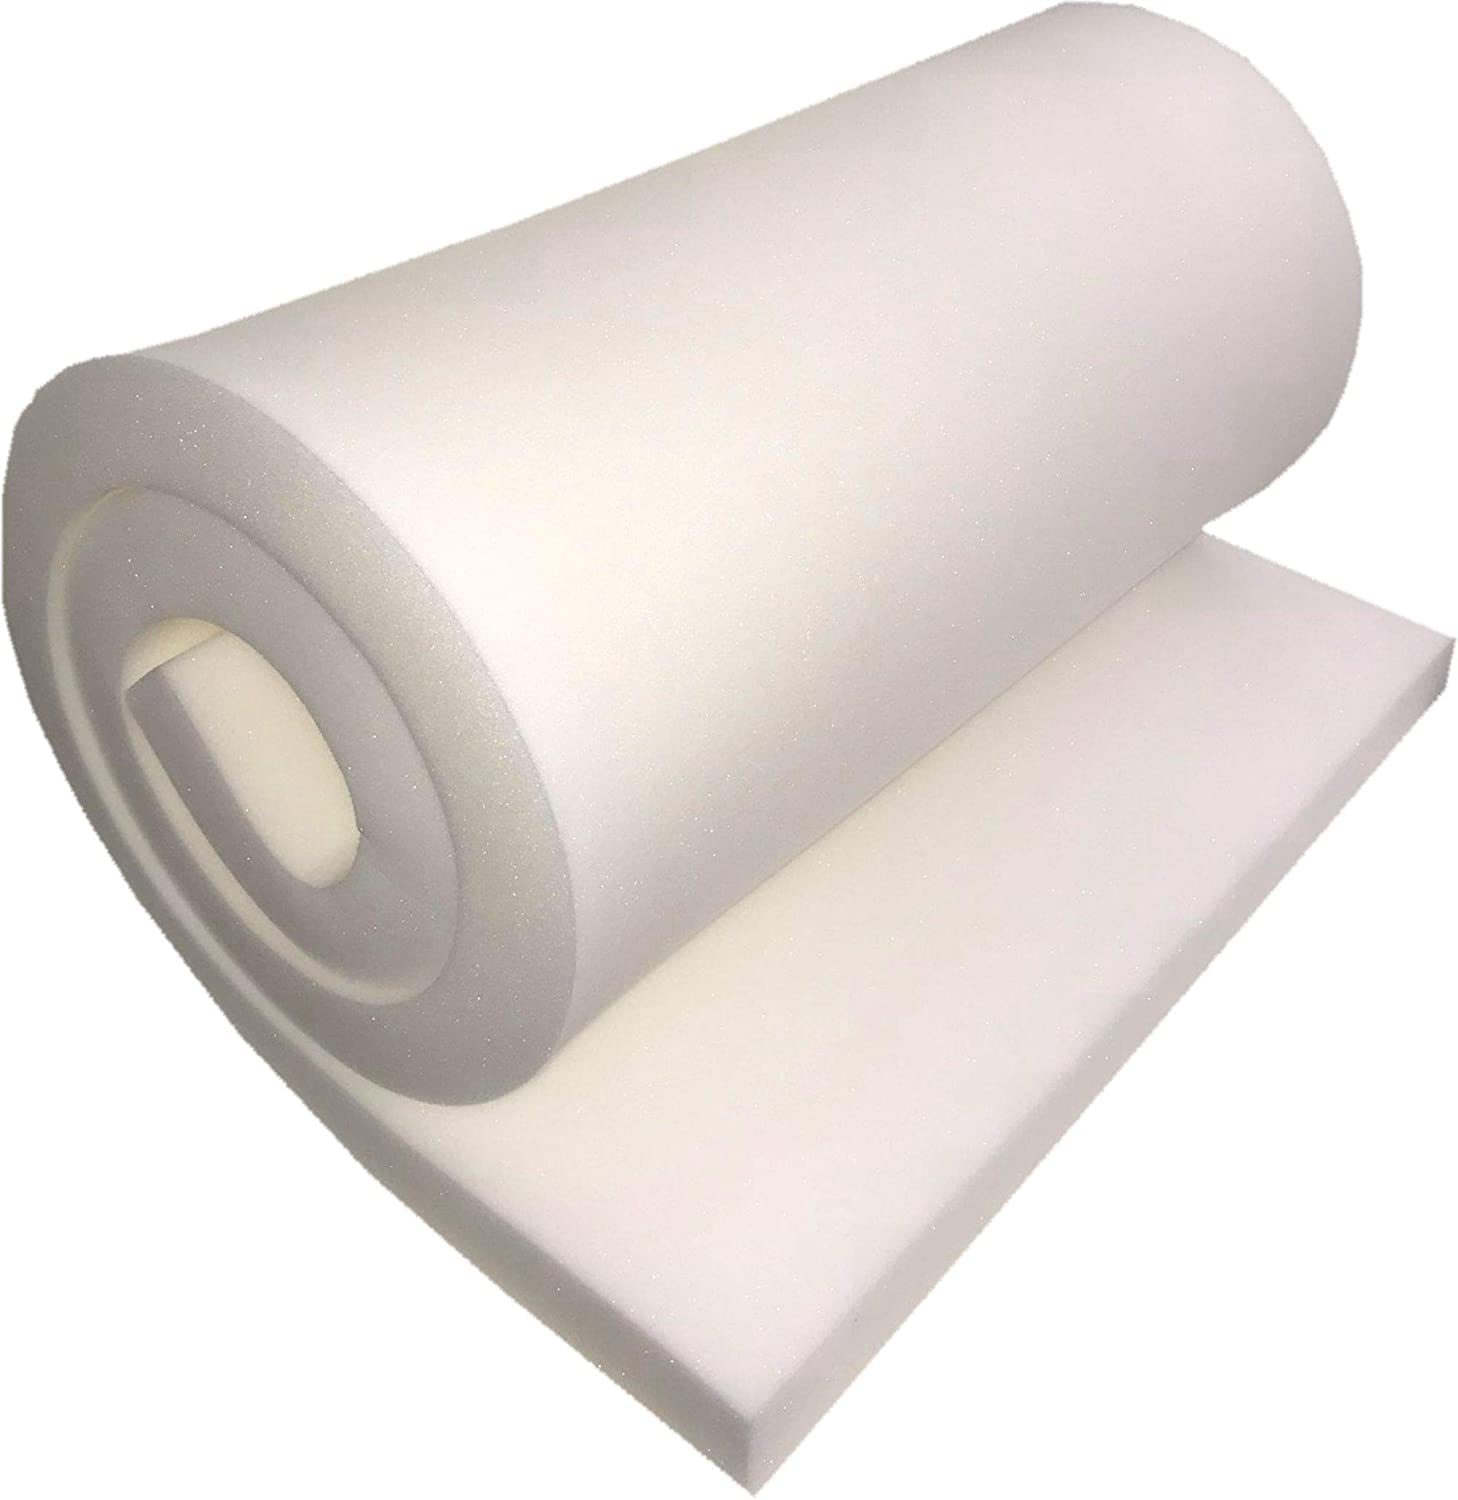 FoamTouch Upholstery Foam Cushion High Density 1 Height x 36 Width x 96 Length Made in USA